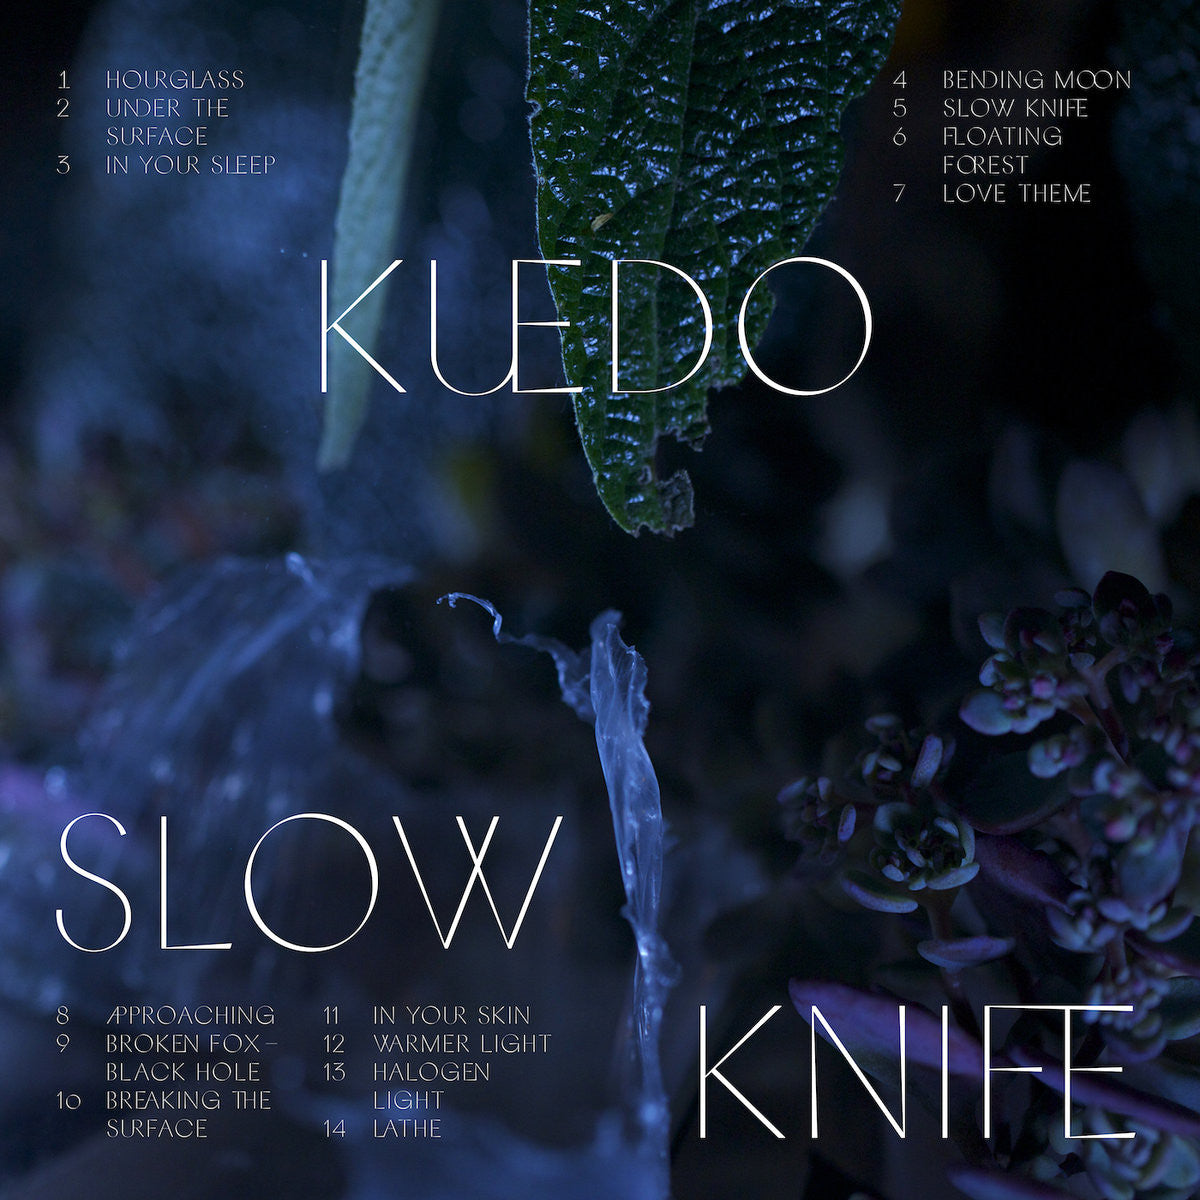 Kuedo - Slow Knife [CD Edition] , CD - Planet Mu Records, Unearthed Sounds